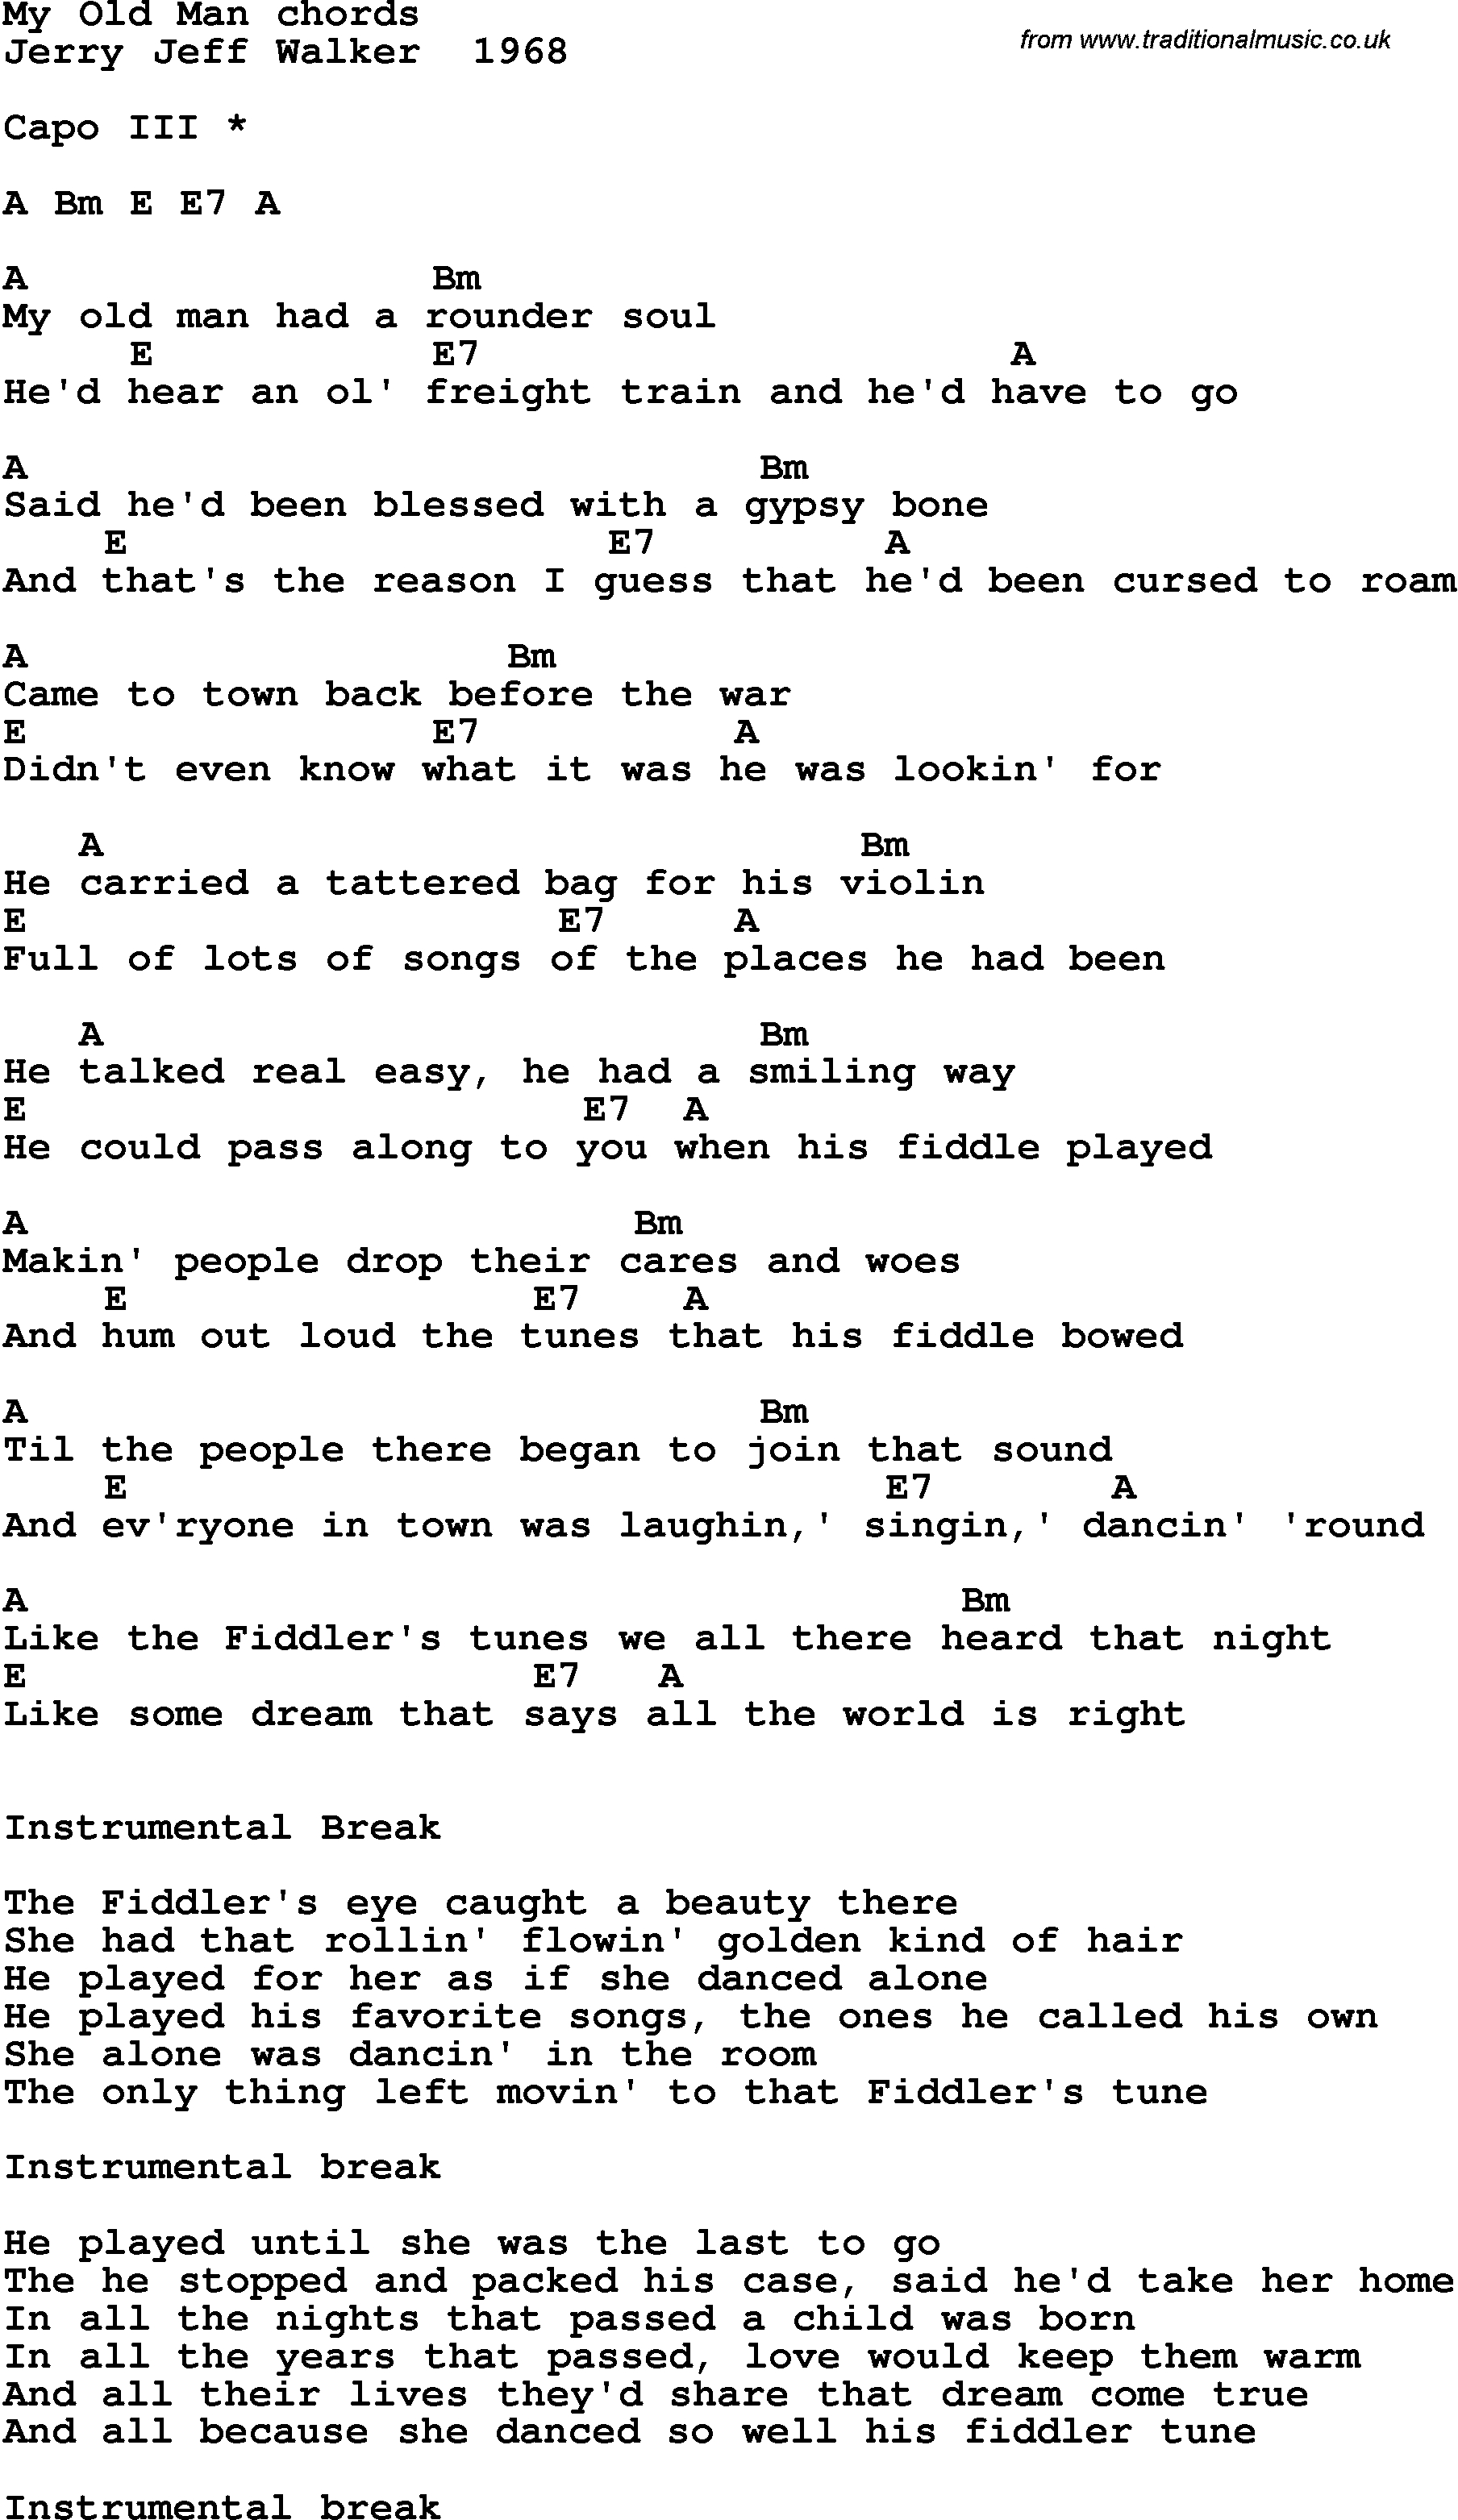 Old Man Chords Song Lyrics With Guitar Chords For My Old Man